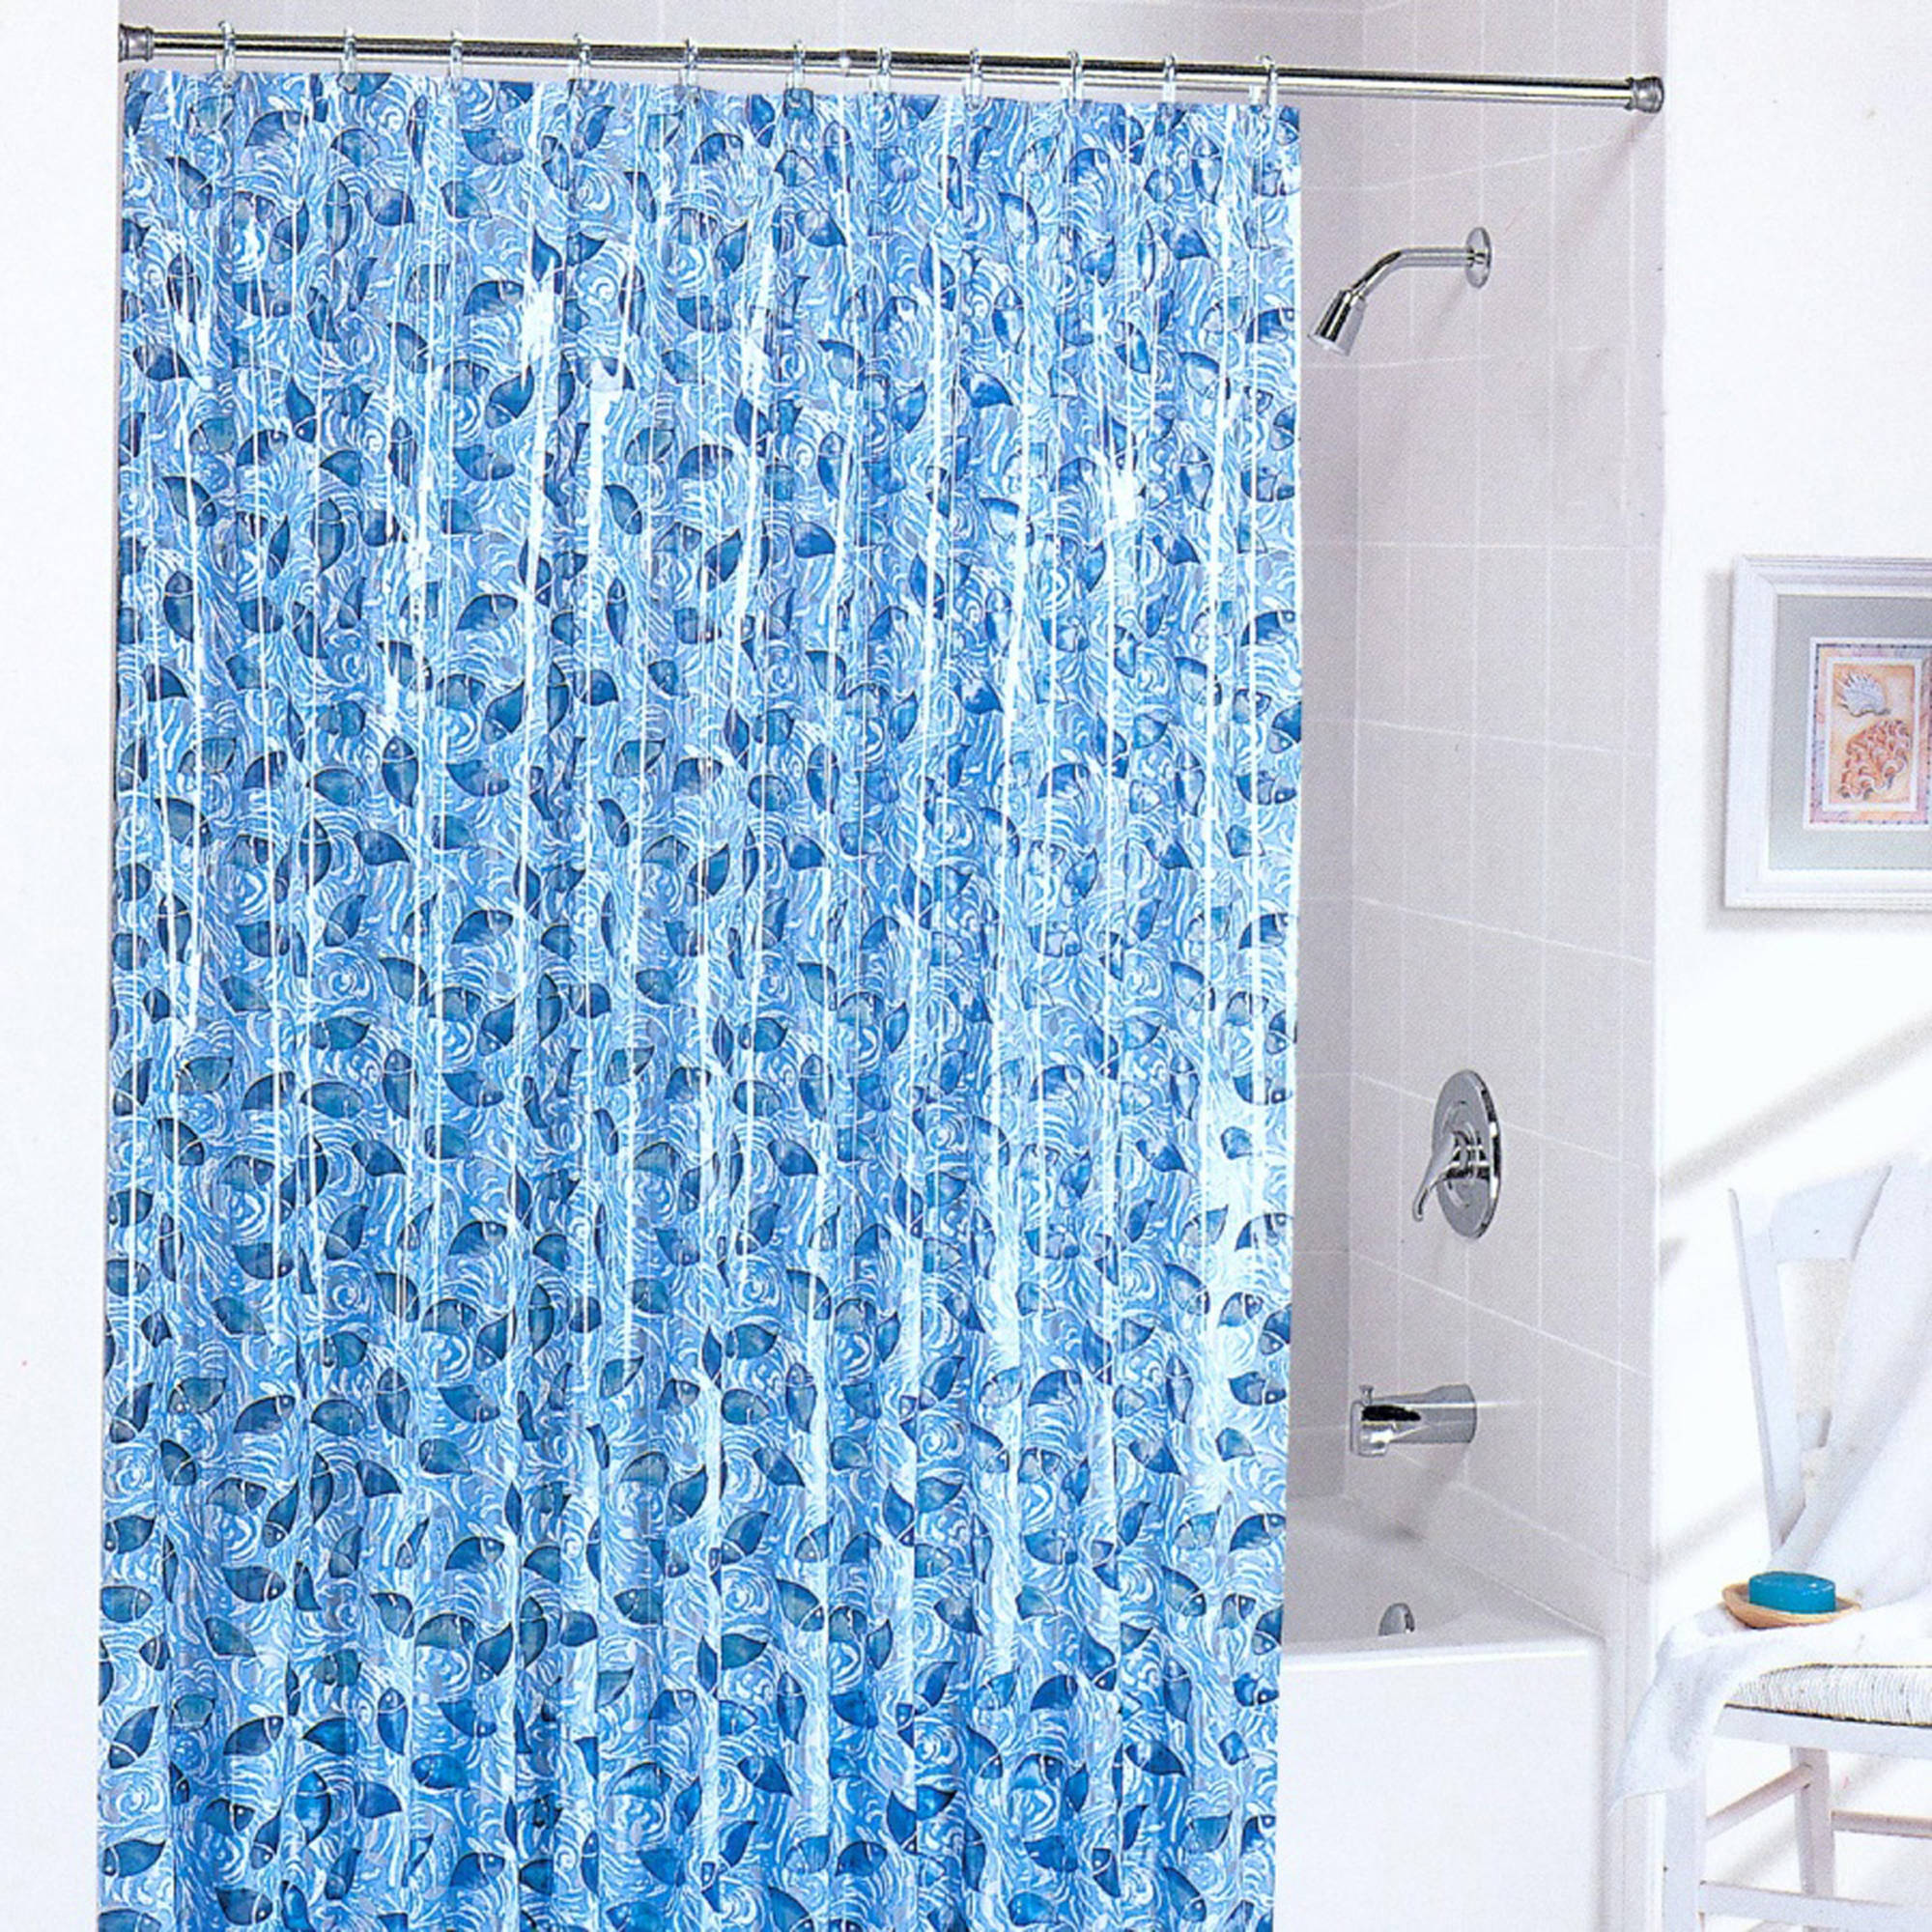 Batik Fish Shower Curtain